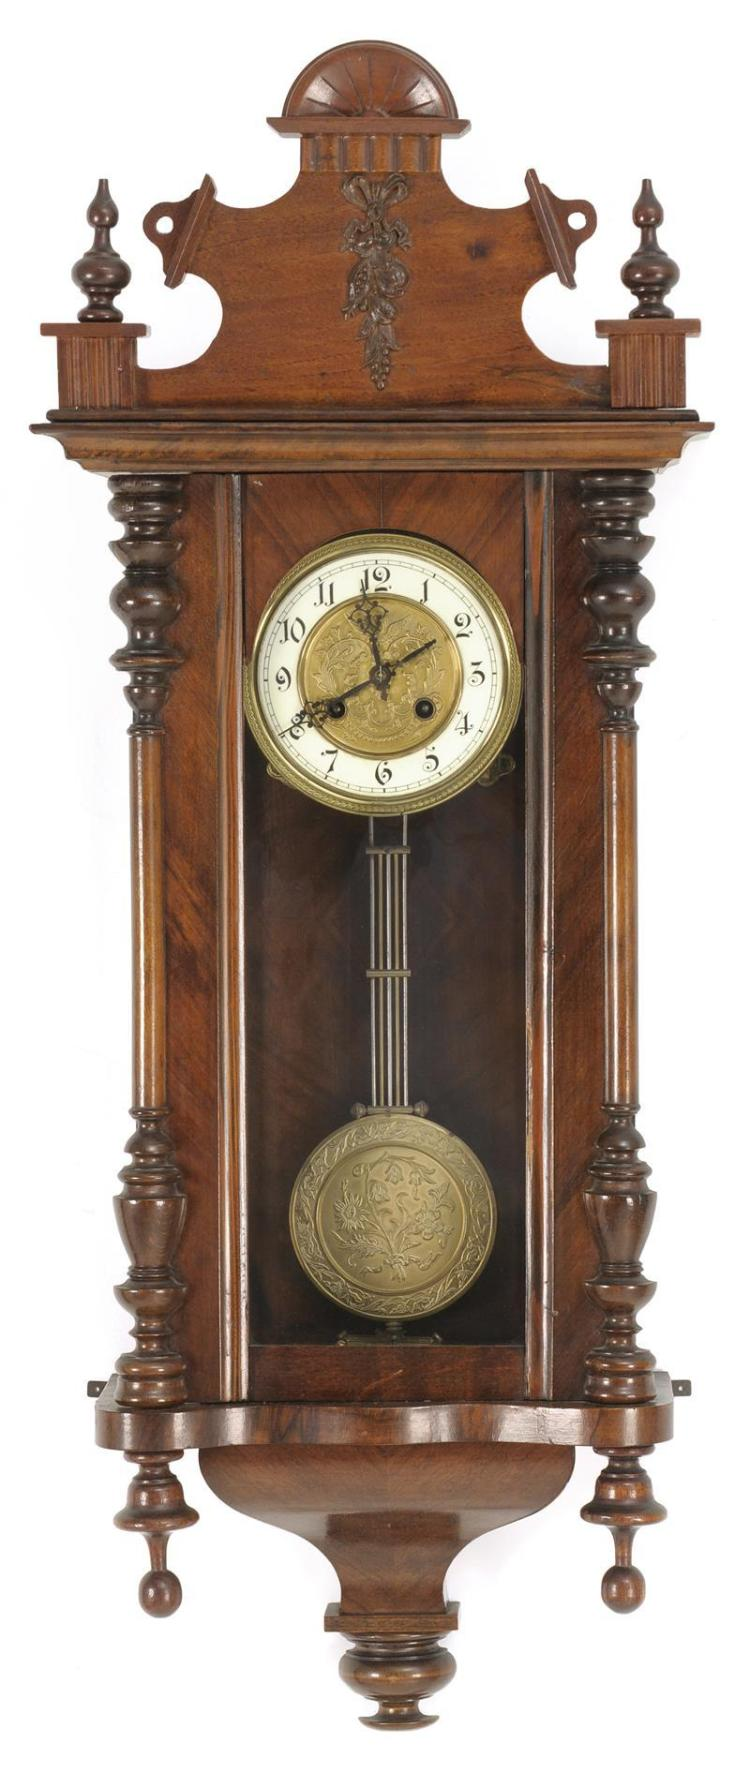 VIENNA-STYLE WALL REGULATOR CLOCK In a walnut-veneered case. Circular brass face with winged angel at top. Black numerals on ivory-c...